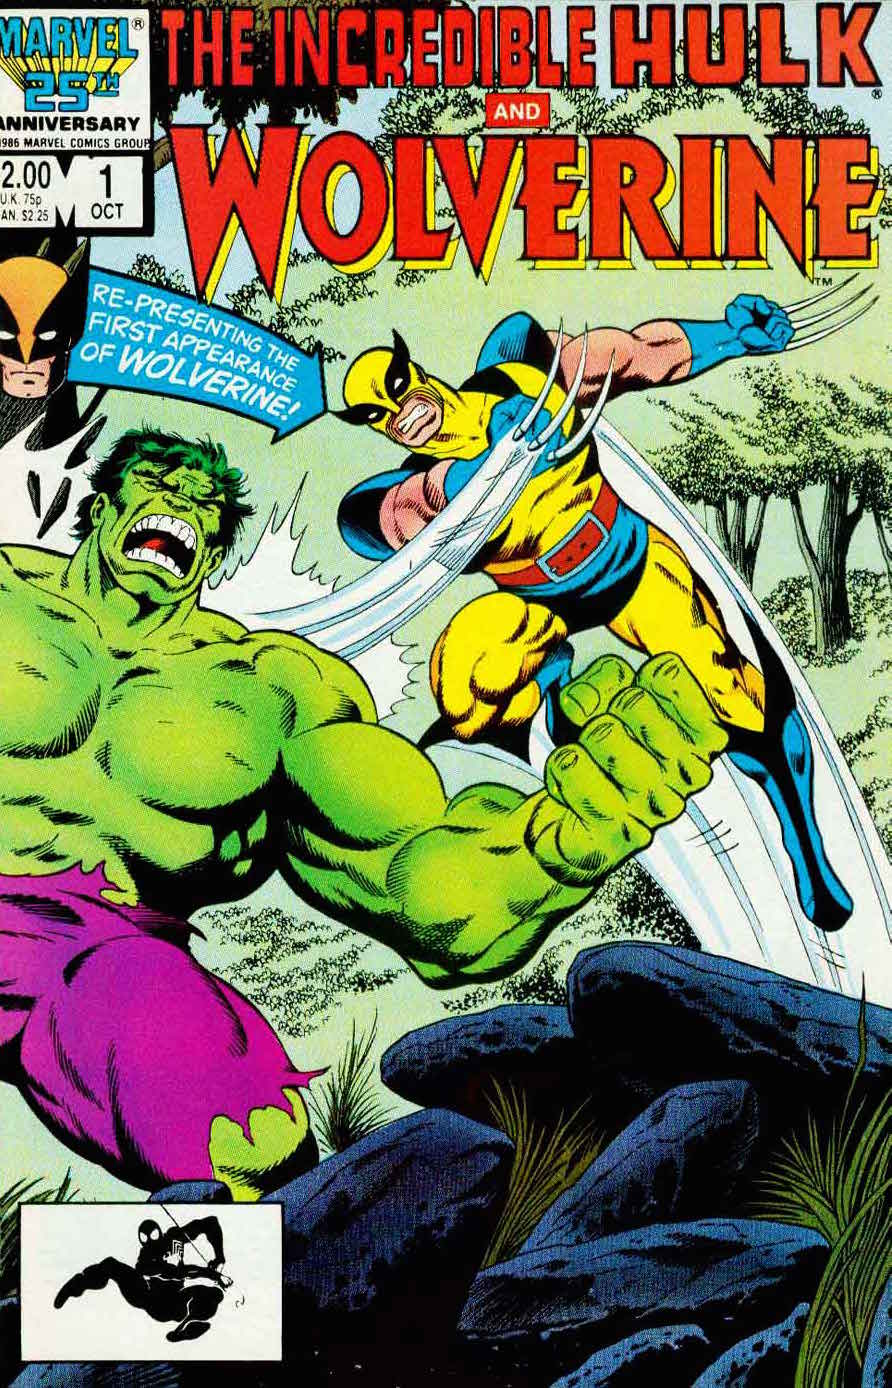 Incredible Hulk and Wolverine #1 marvel 1980s comic book cover art by John Byrne